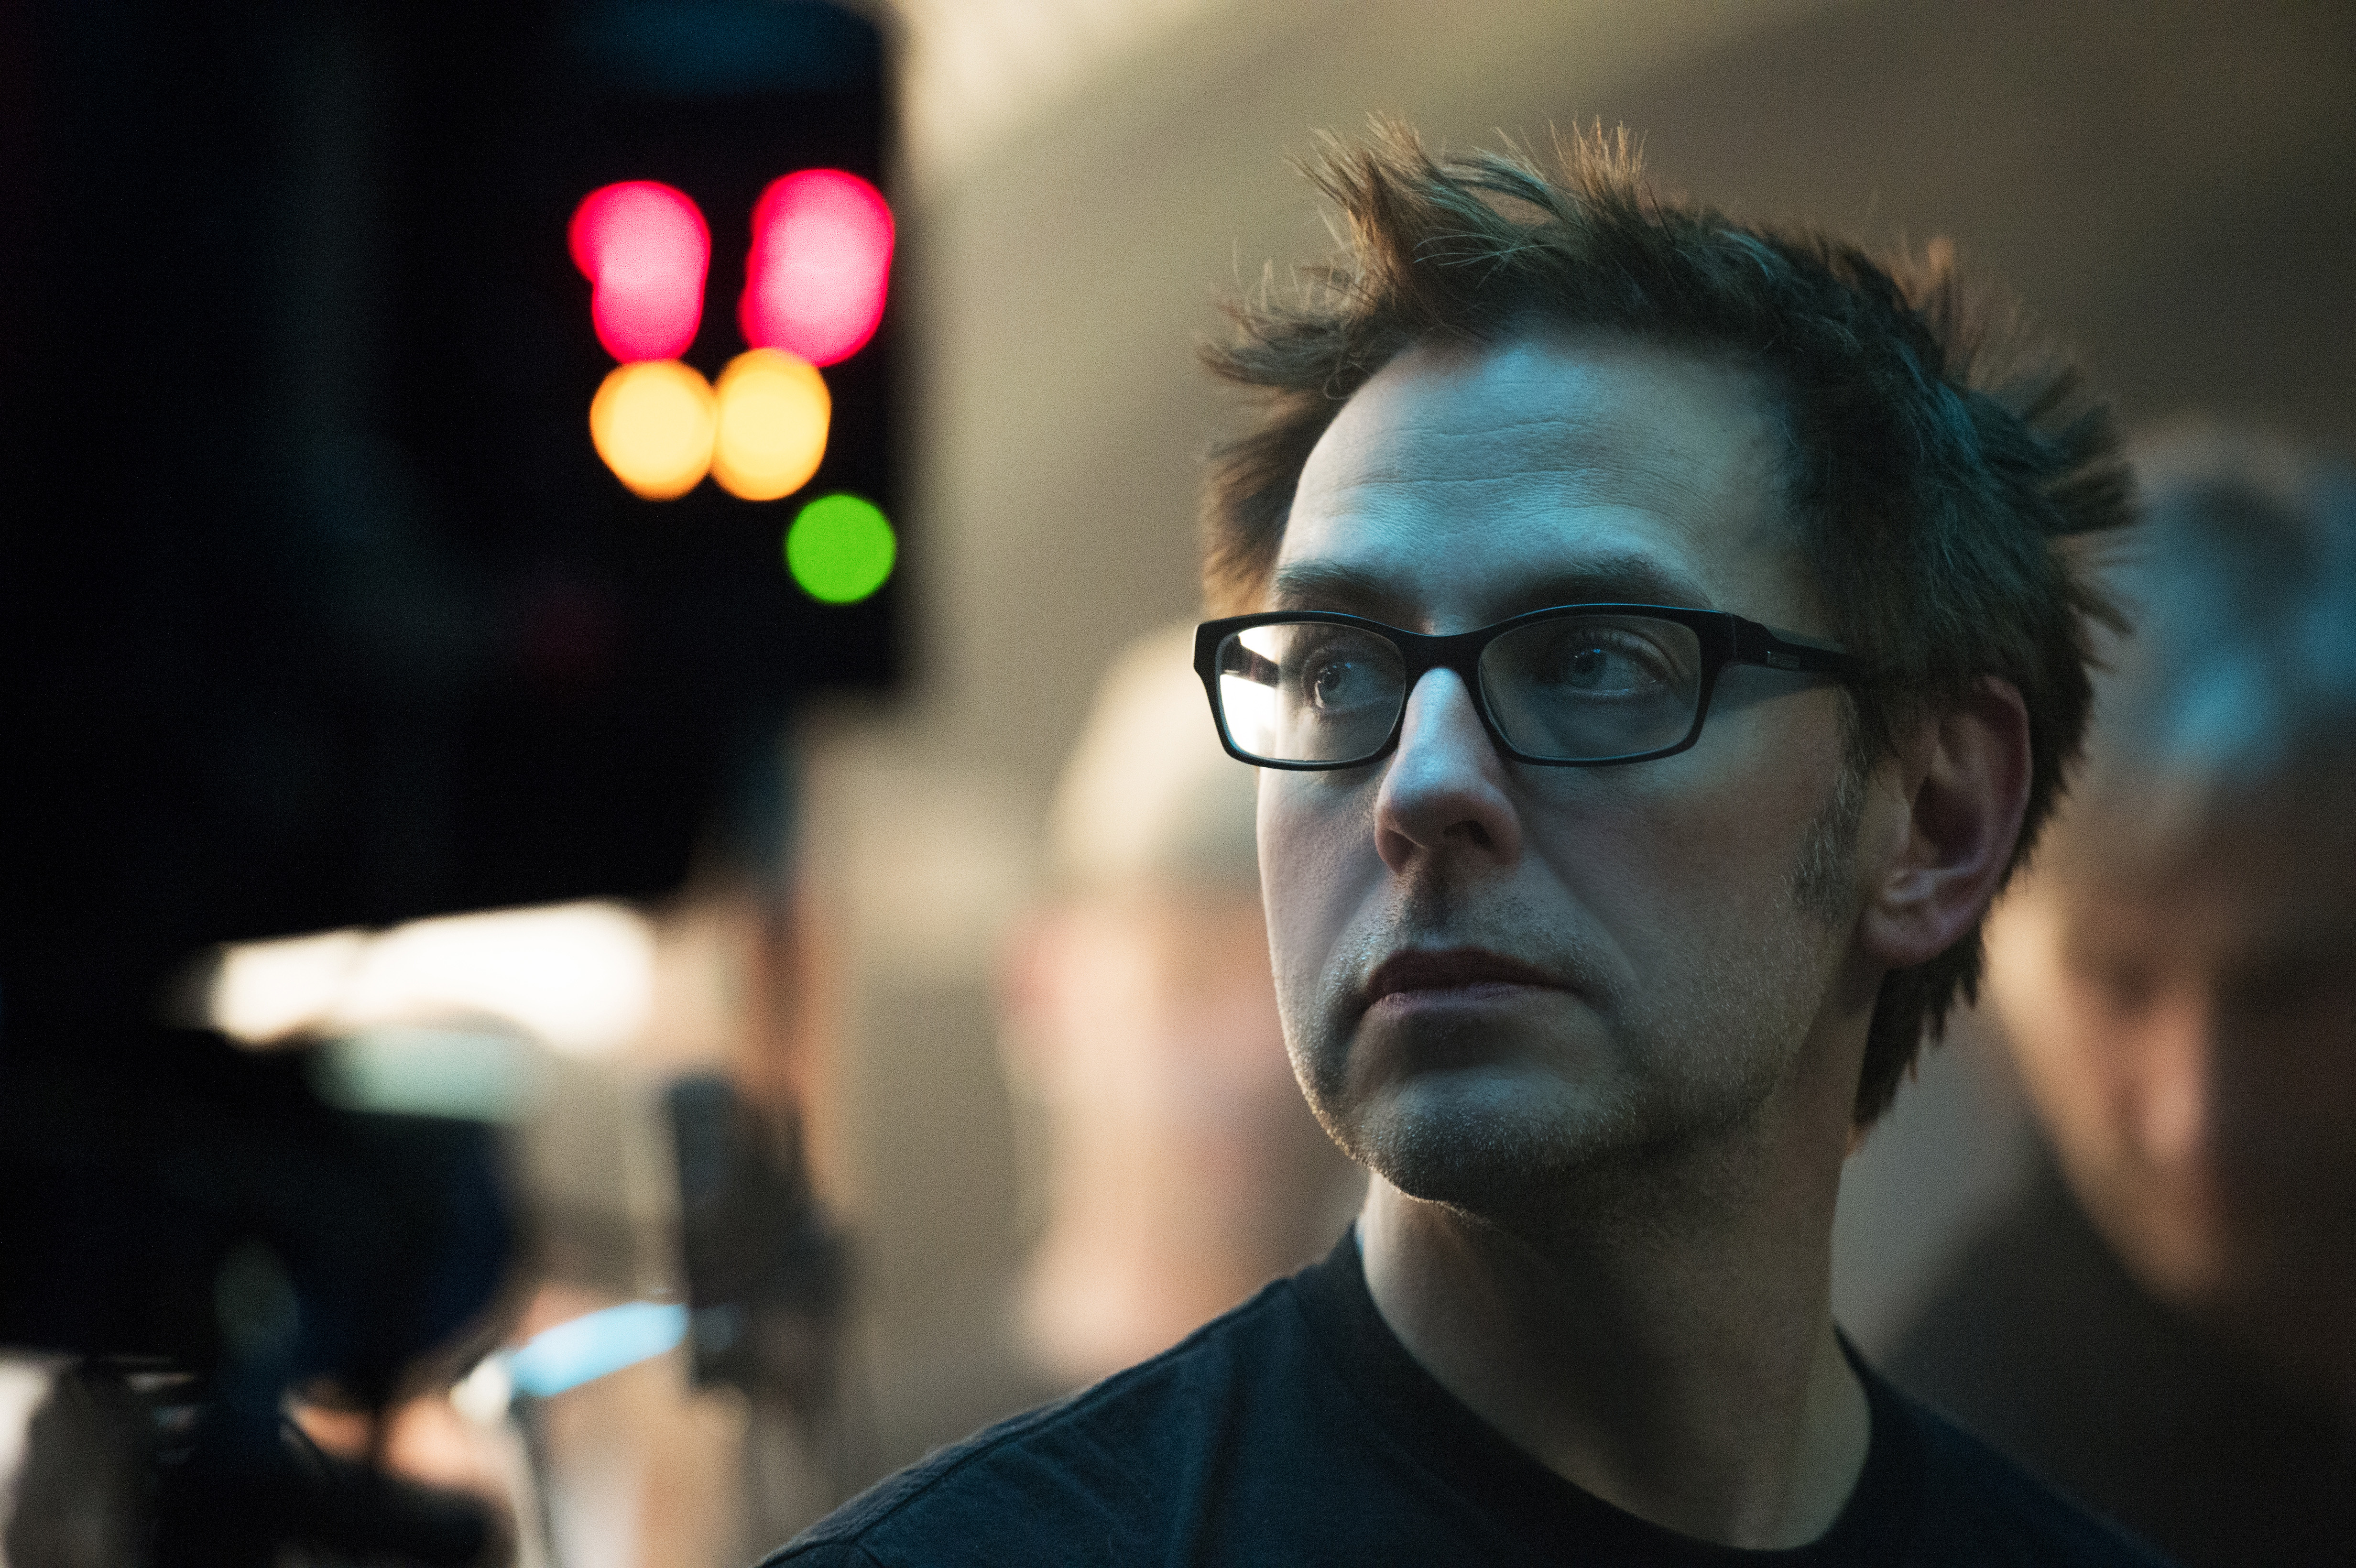 James Gunn Guardians Of The Galaxy Star Wars